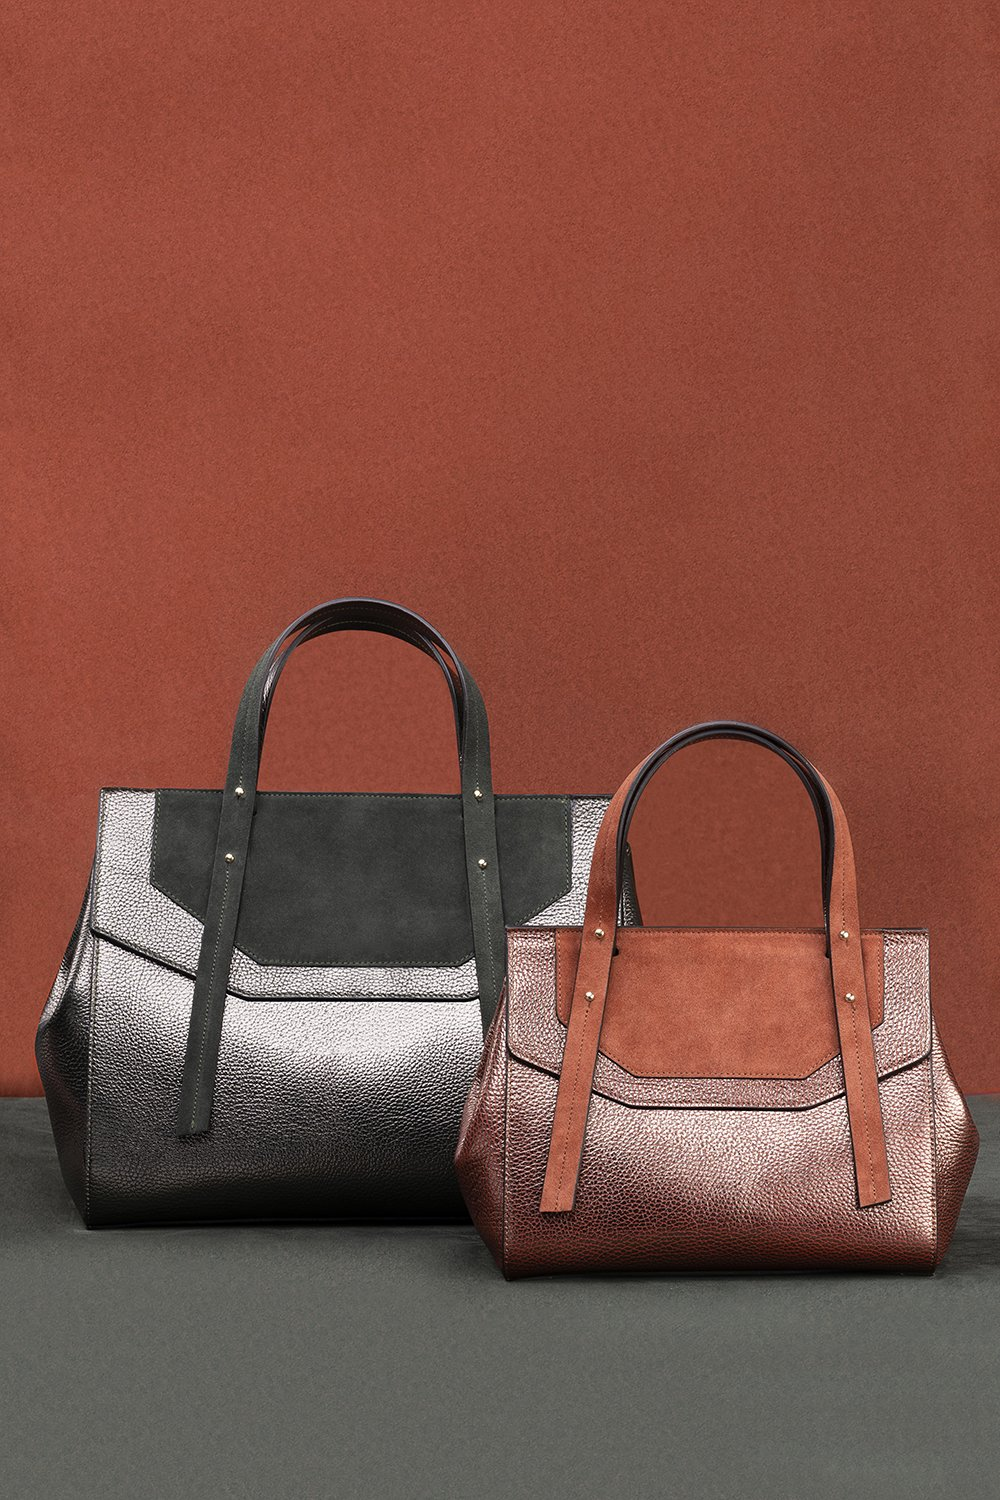 Kilesa made in italy bags laminated leather and suede